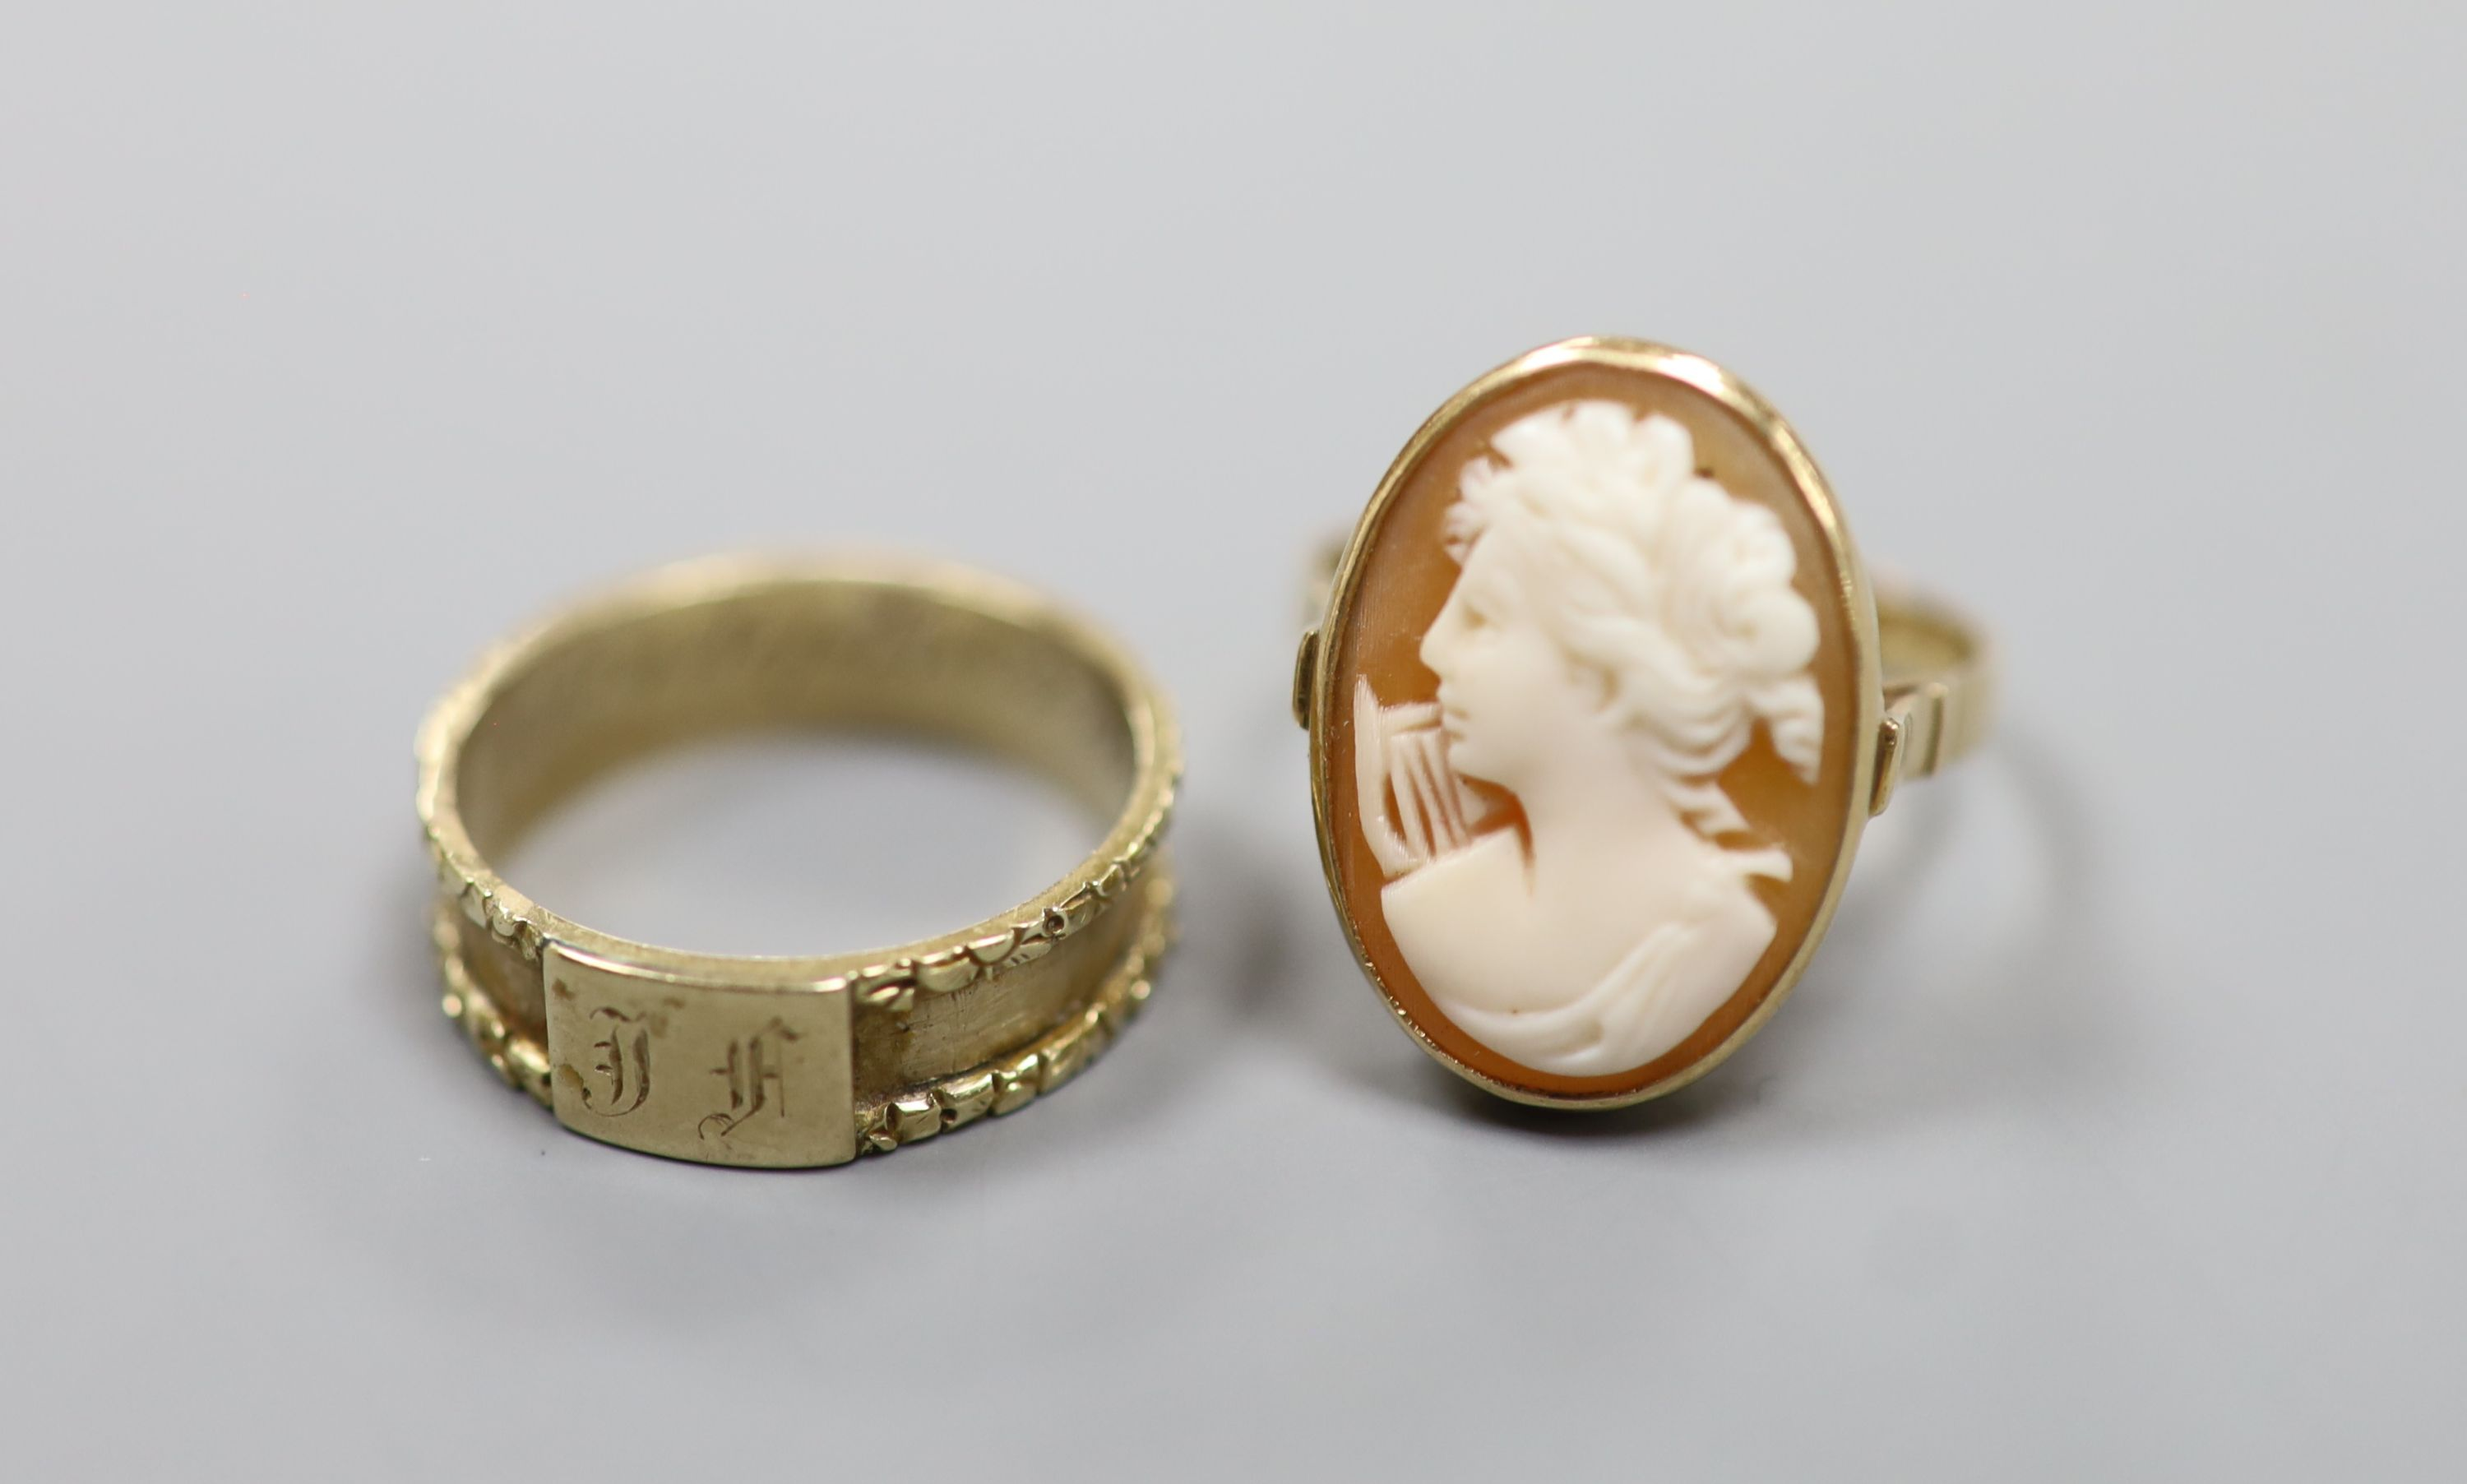 A William IV yellow metal mourning ring (lacking black enamel), with engraved initial and